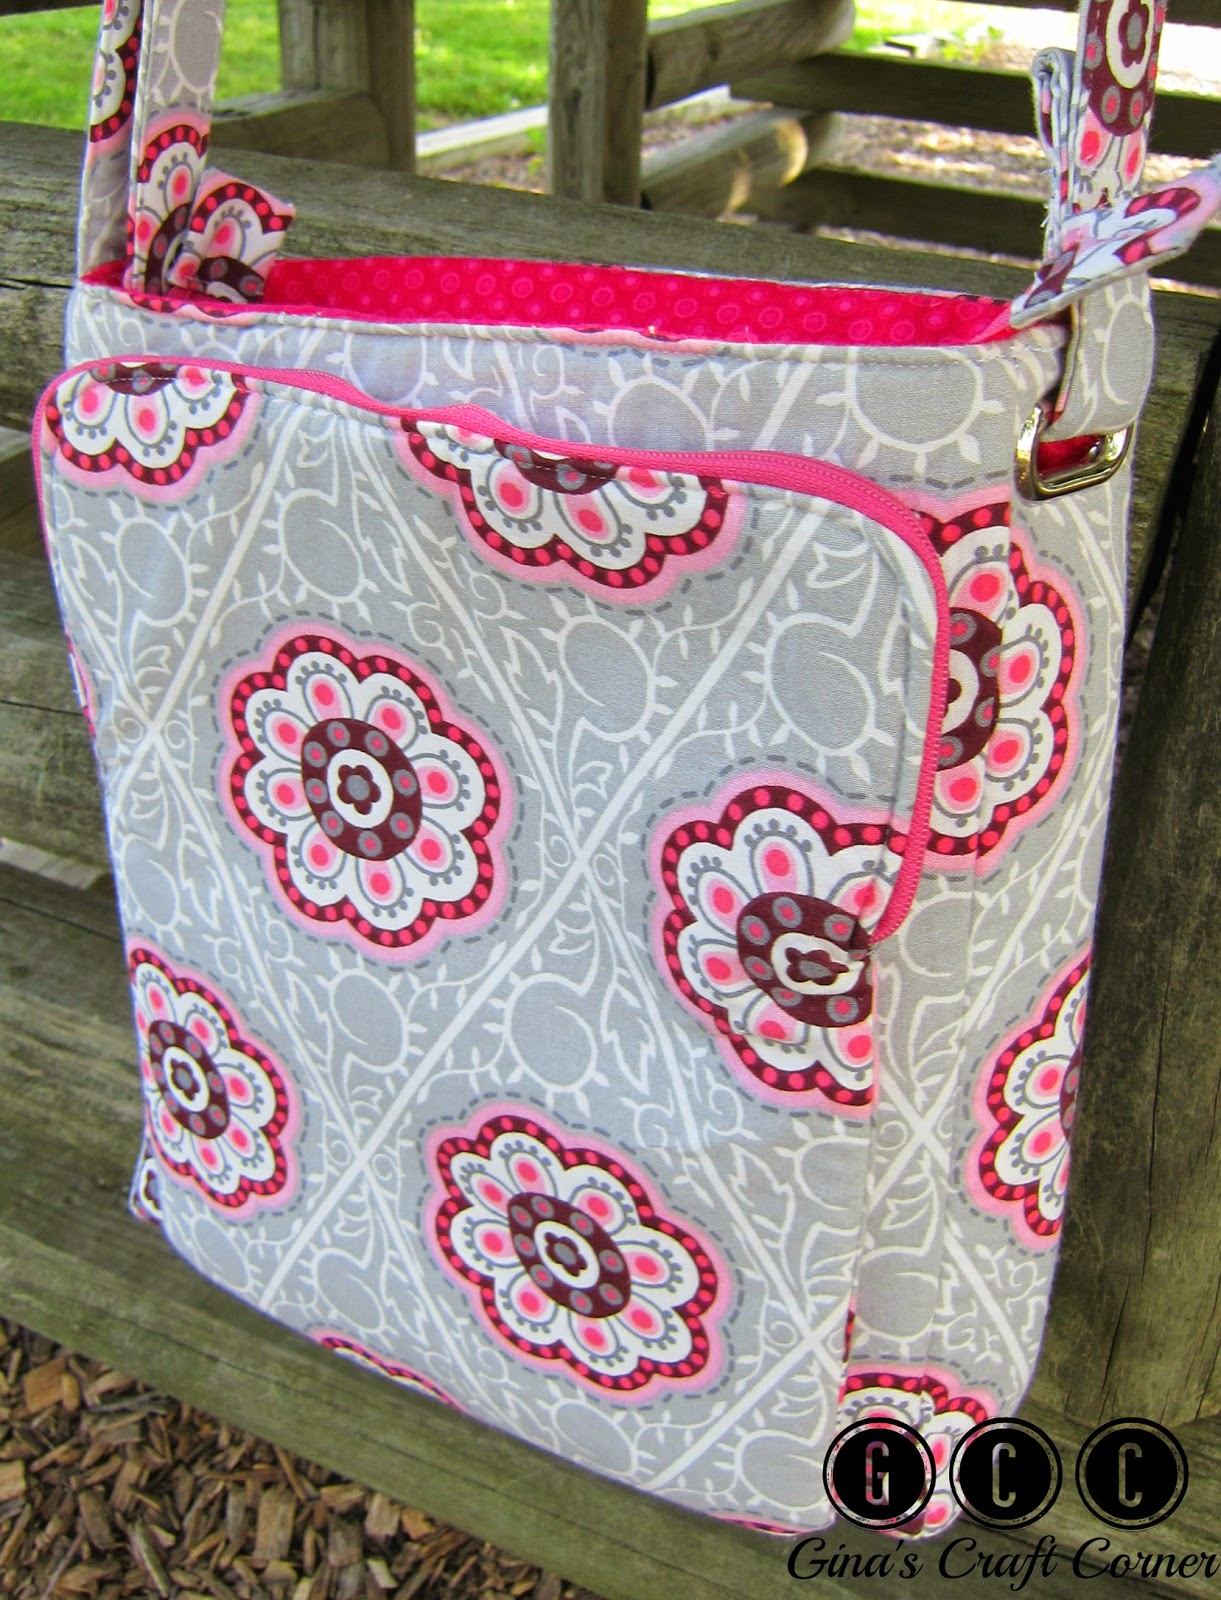 Lombard Street Crossbody Bag By Gina's Craft Corner (Design by ChrisWDesigns)